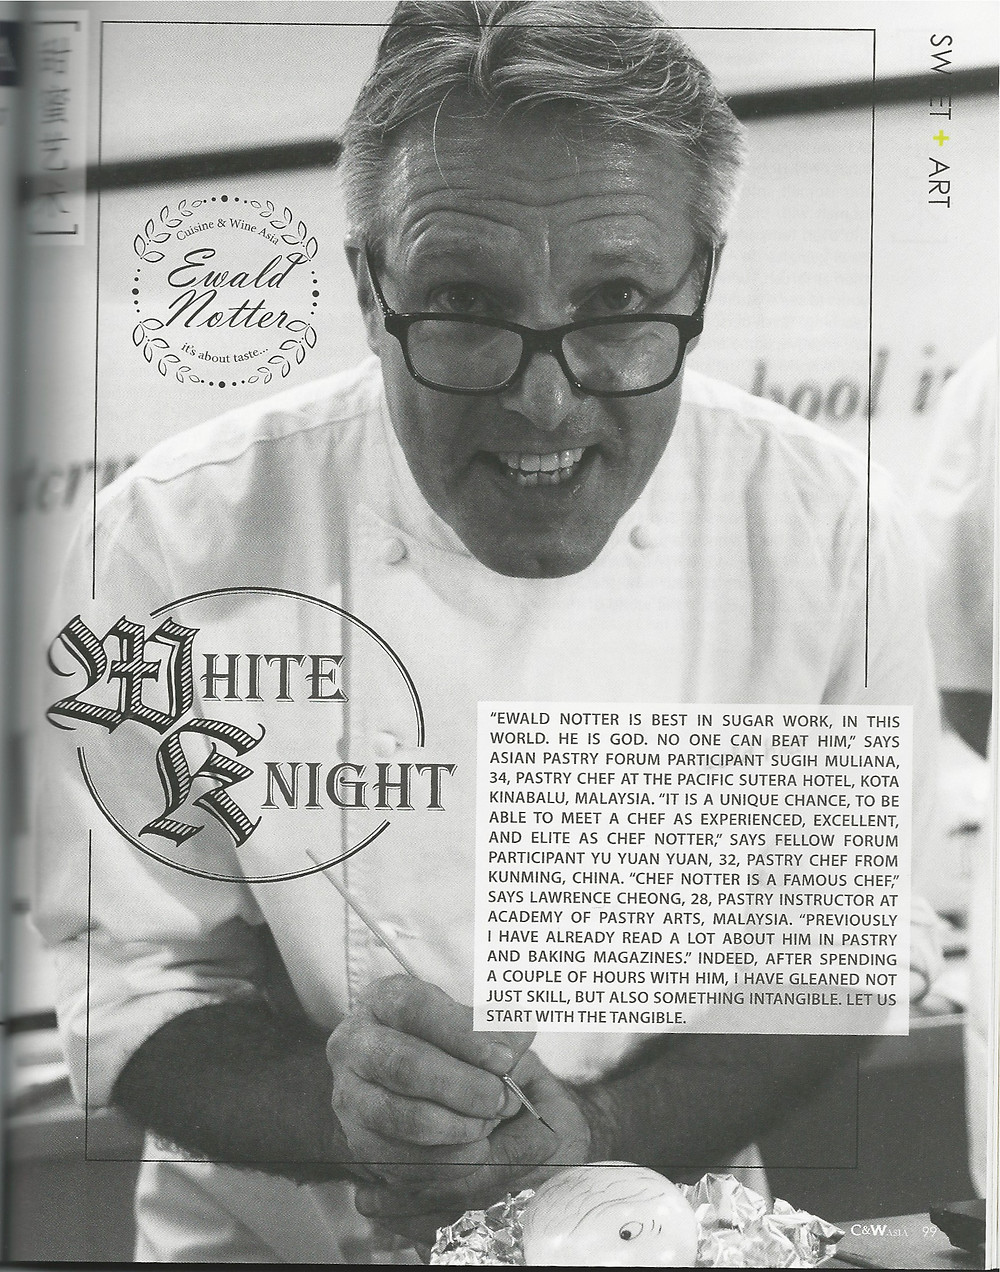 Cuisine & Wine ASIA March-April 2014 White Knight.jpg